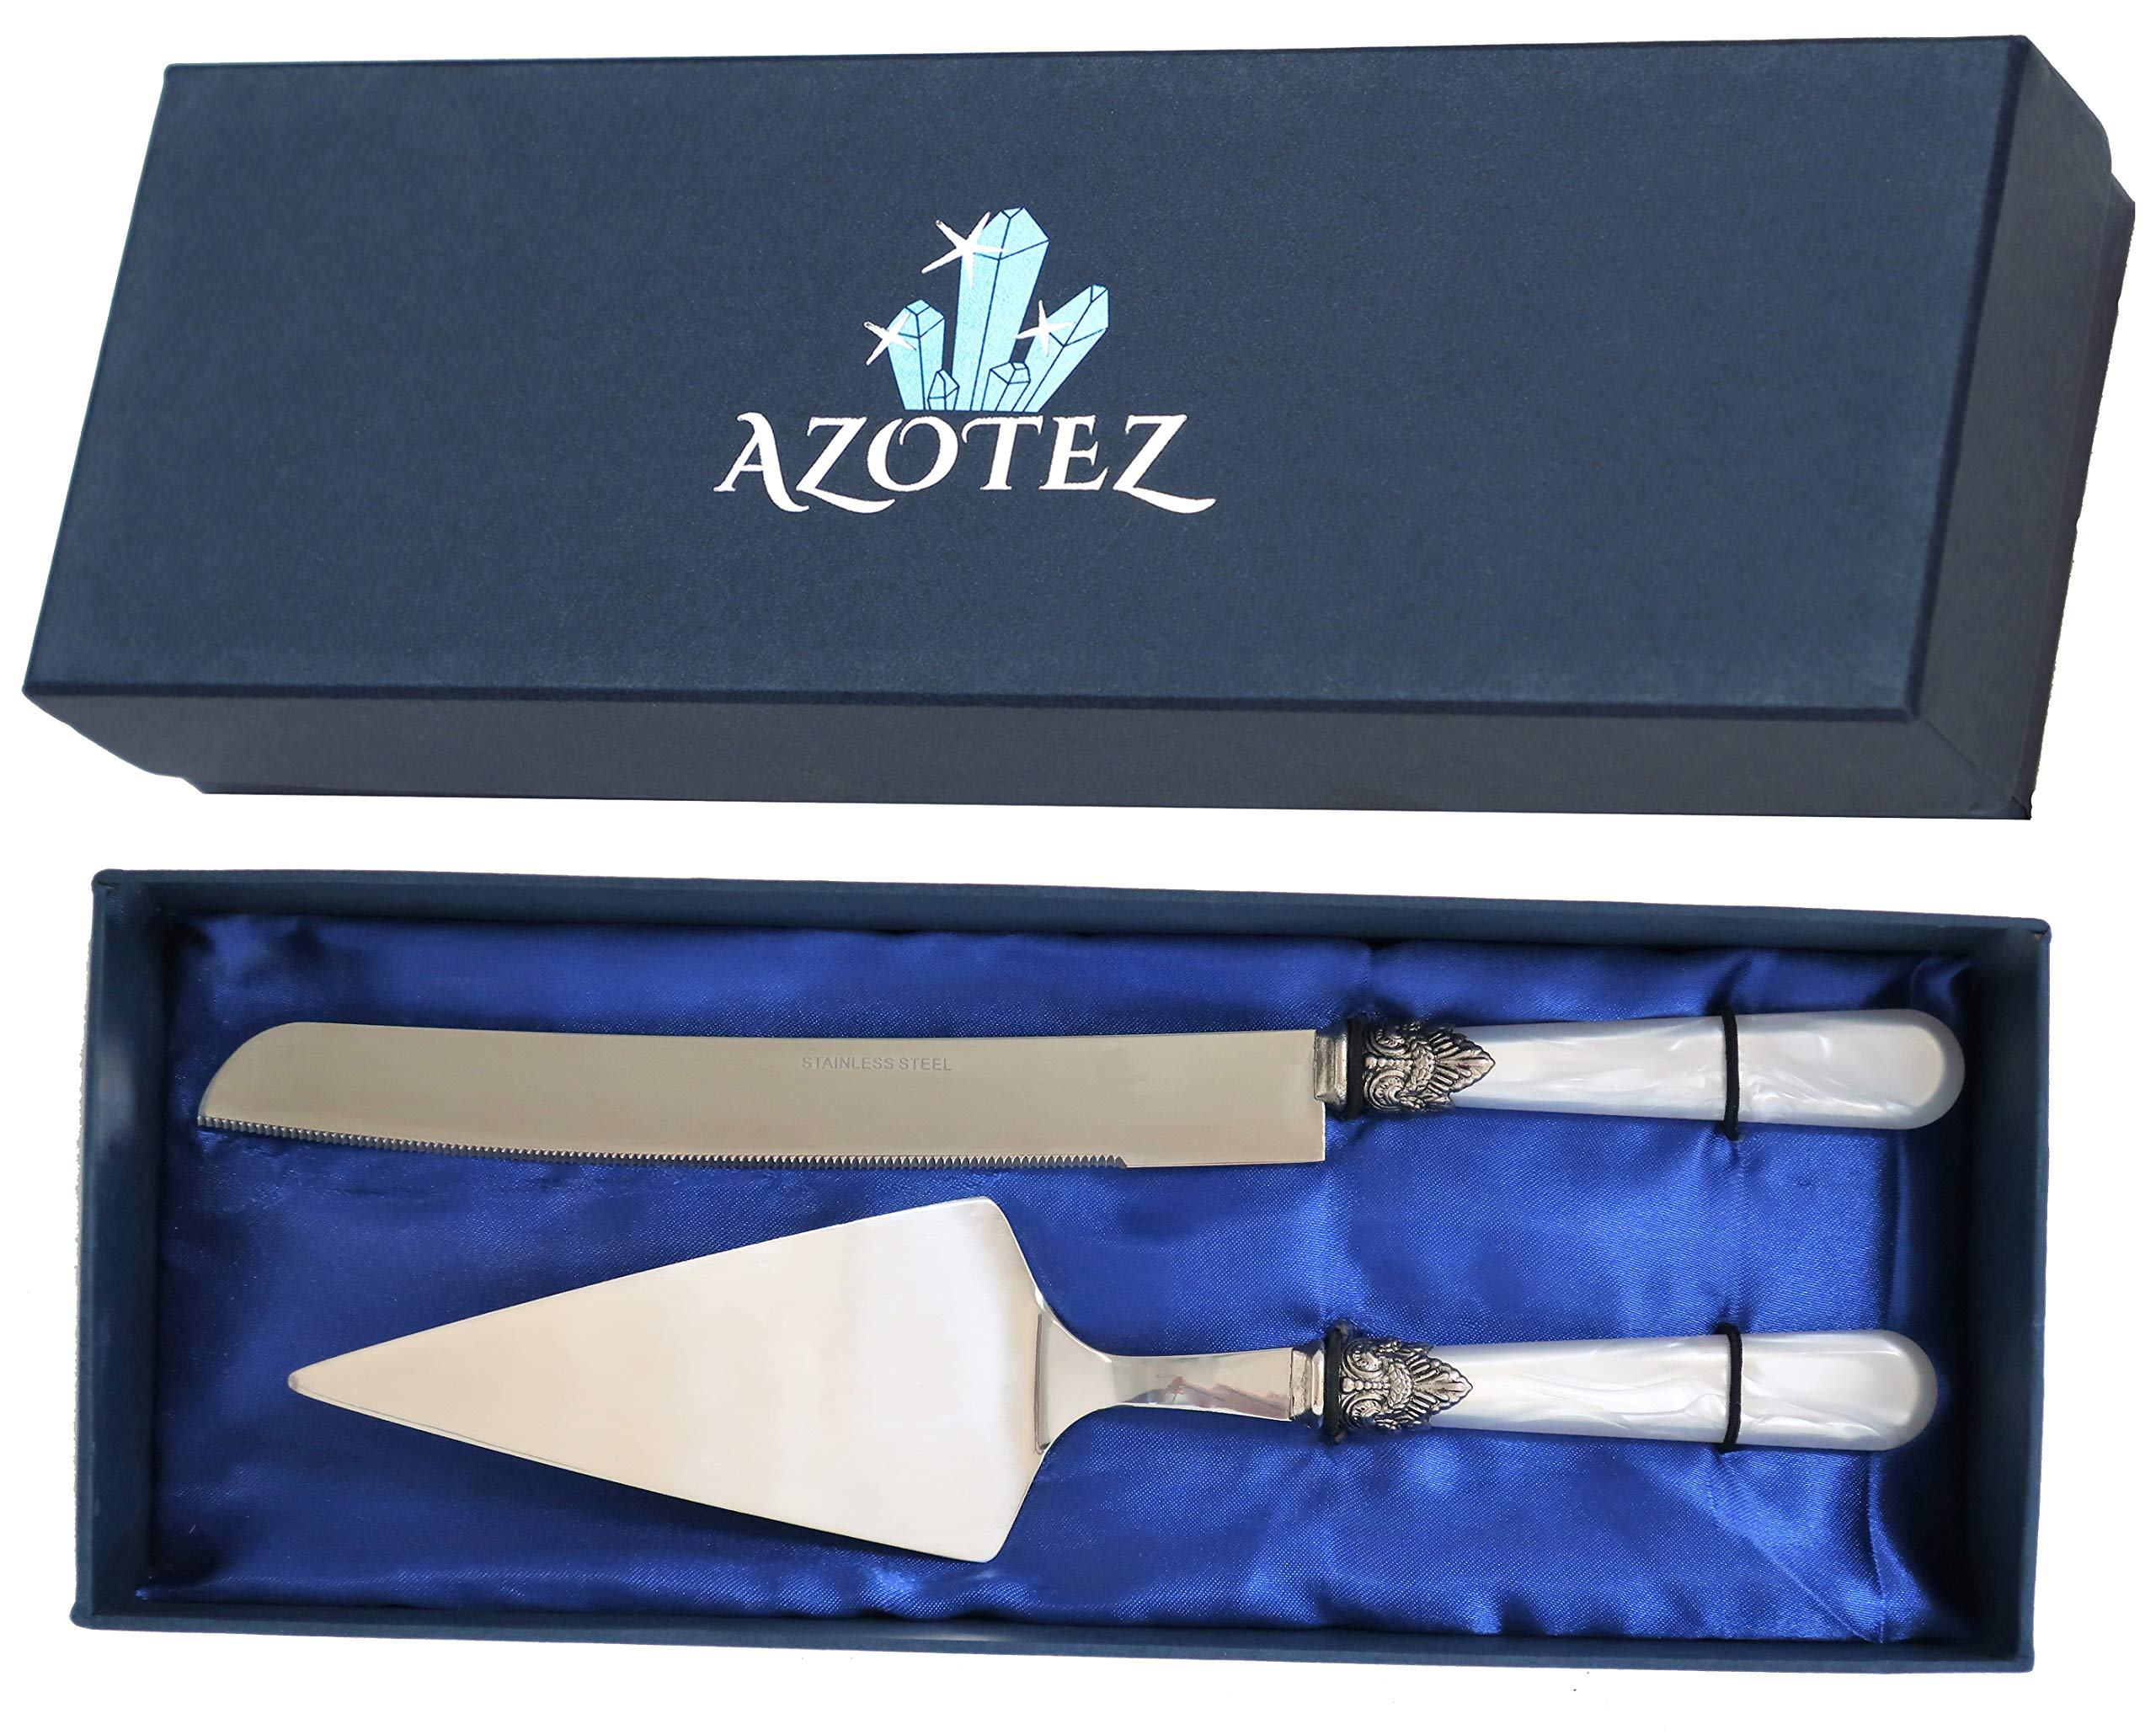 AZOTEZ Cake Server and Knife Set - Cake Cutter or Pie Cutter and Server. Wedding Cake Knife and Server Set Suitable for Cutting Cakes at Weddings, Birthdays or Anniversaries